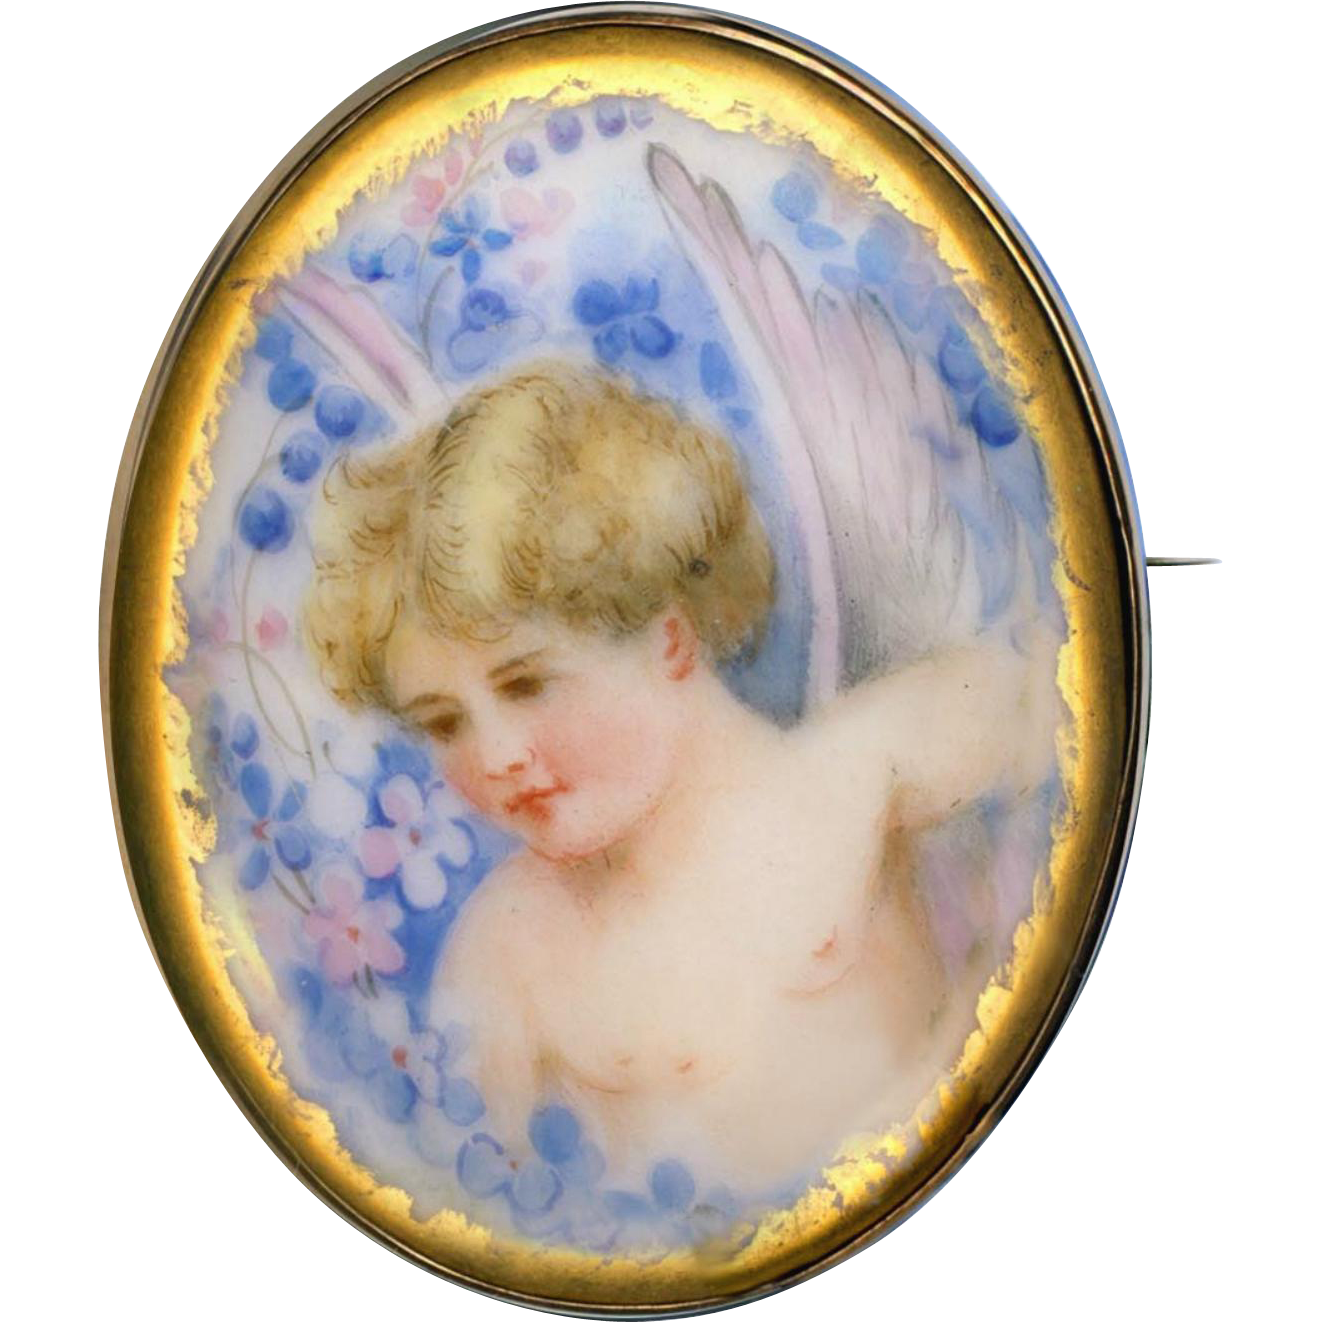 Brooch--Hand Painted Porcelain Cherub or Angel in 19th C. Gold-plated Brass